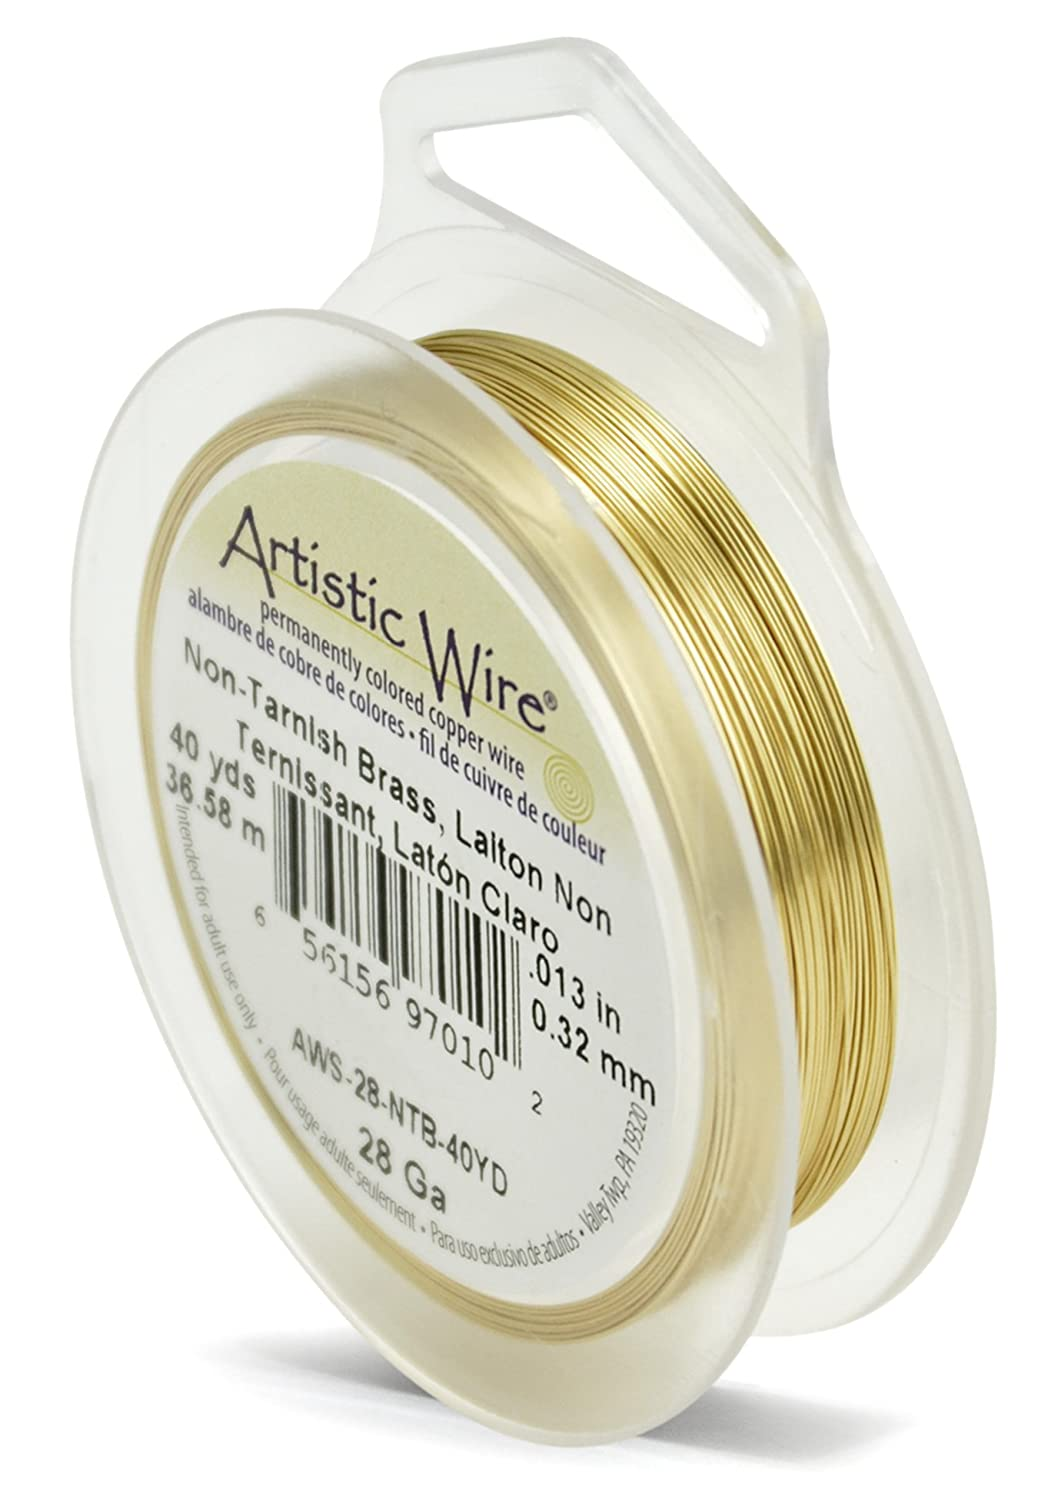 Amazon artistic wire 28 gauge non tarnish brass wire 40 yards greentooth